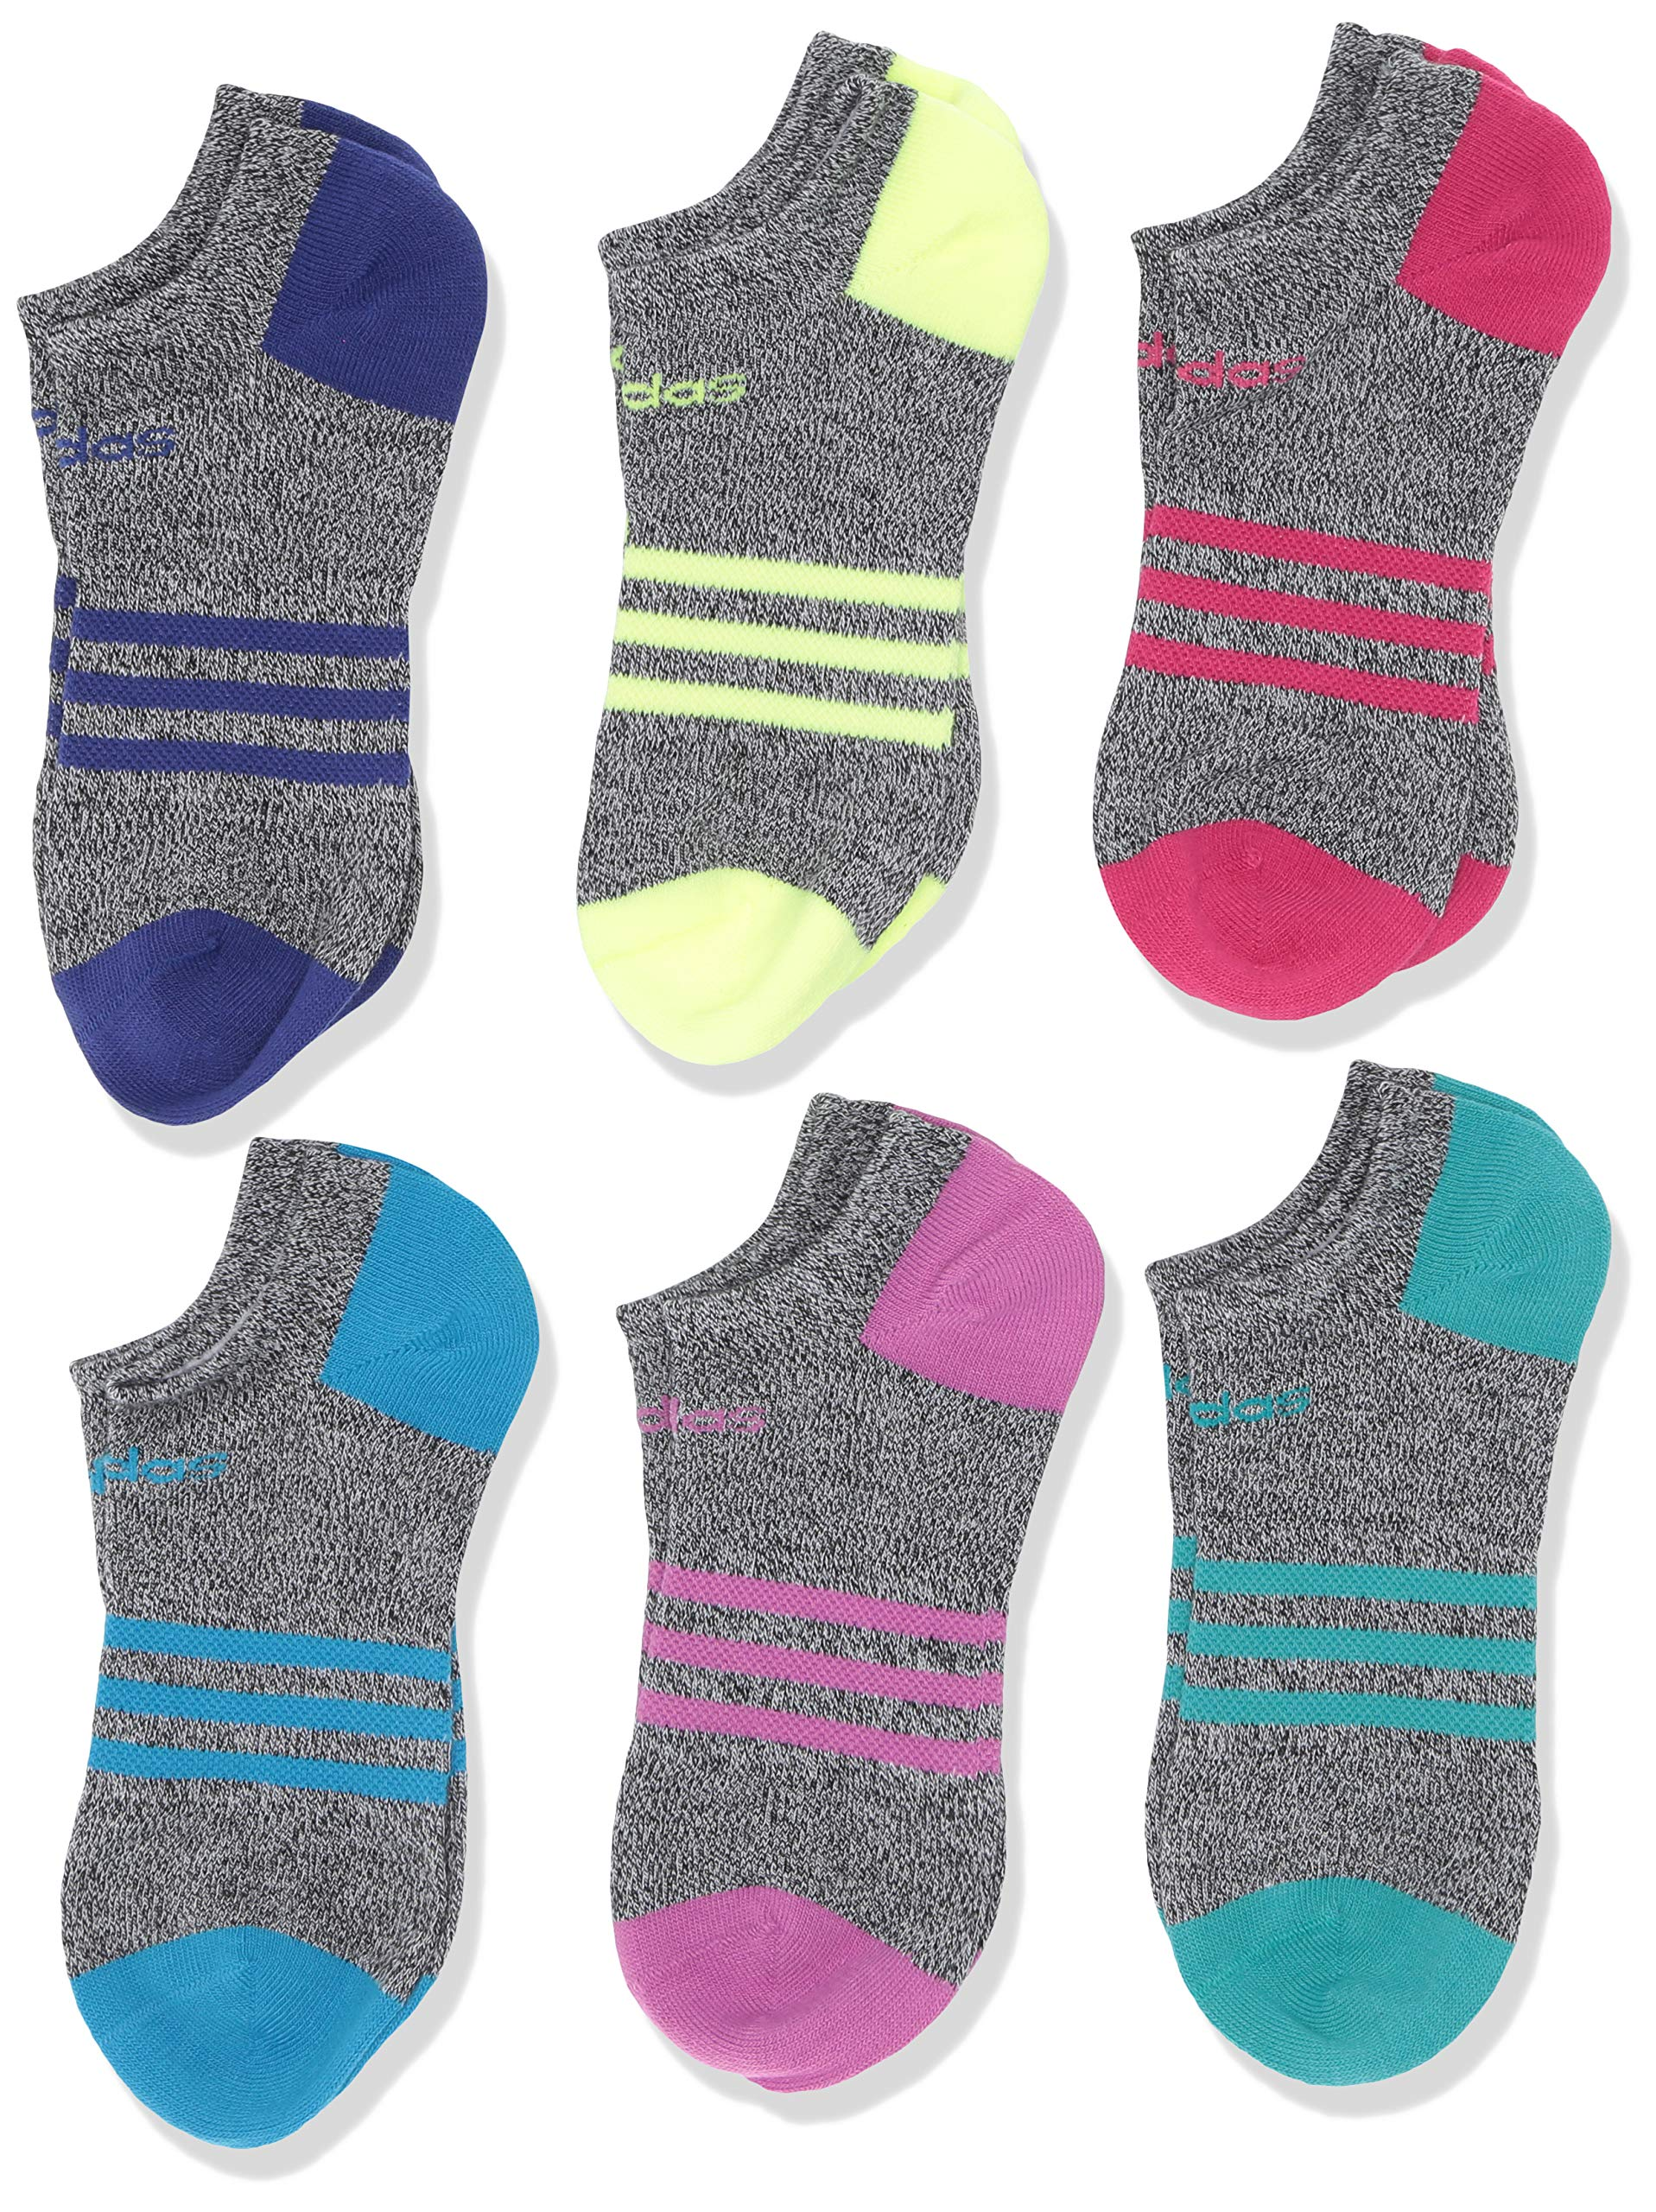 adidas Youth Kids-Girl's Superlite No Show Socks (6 Pair), Black - White Marl/Real Magenta/Active Blue/Hi - Res Y, Medium, (Shoe Size 13C-4Y) by adidas